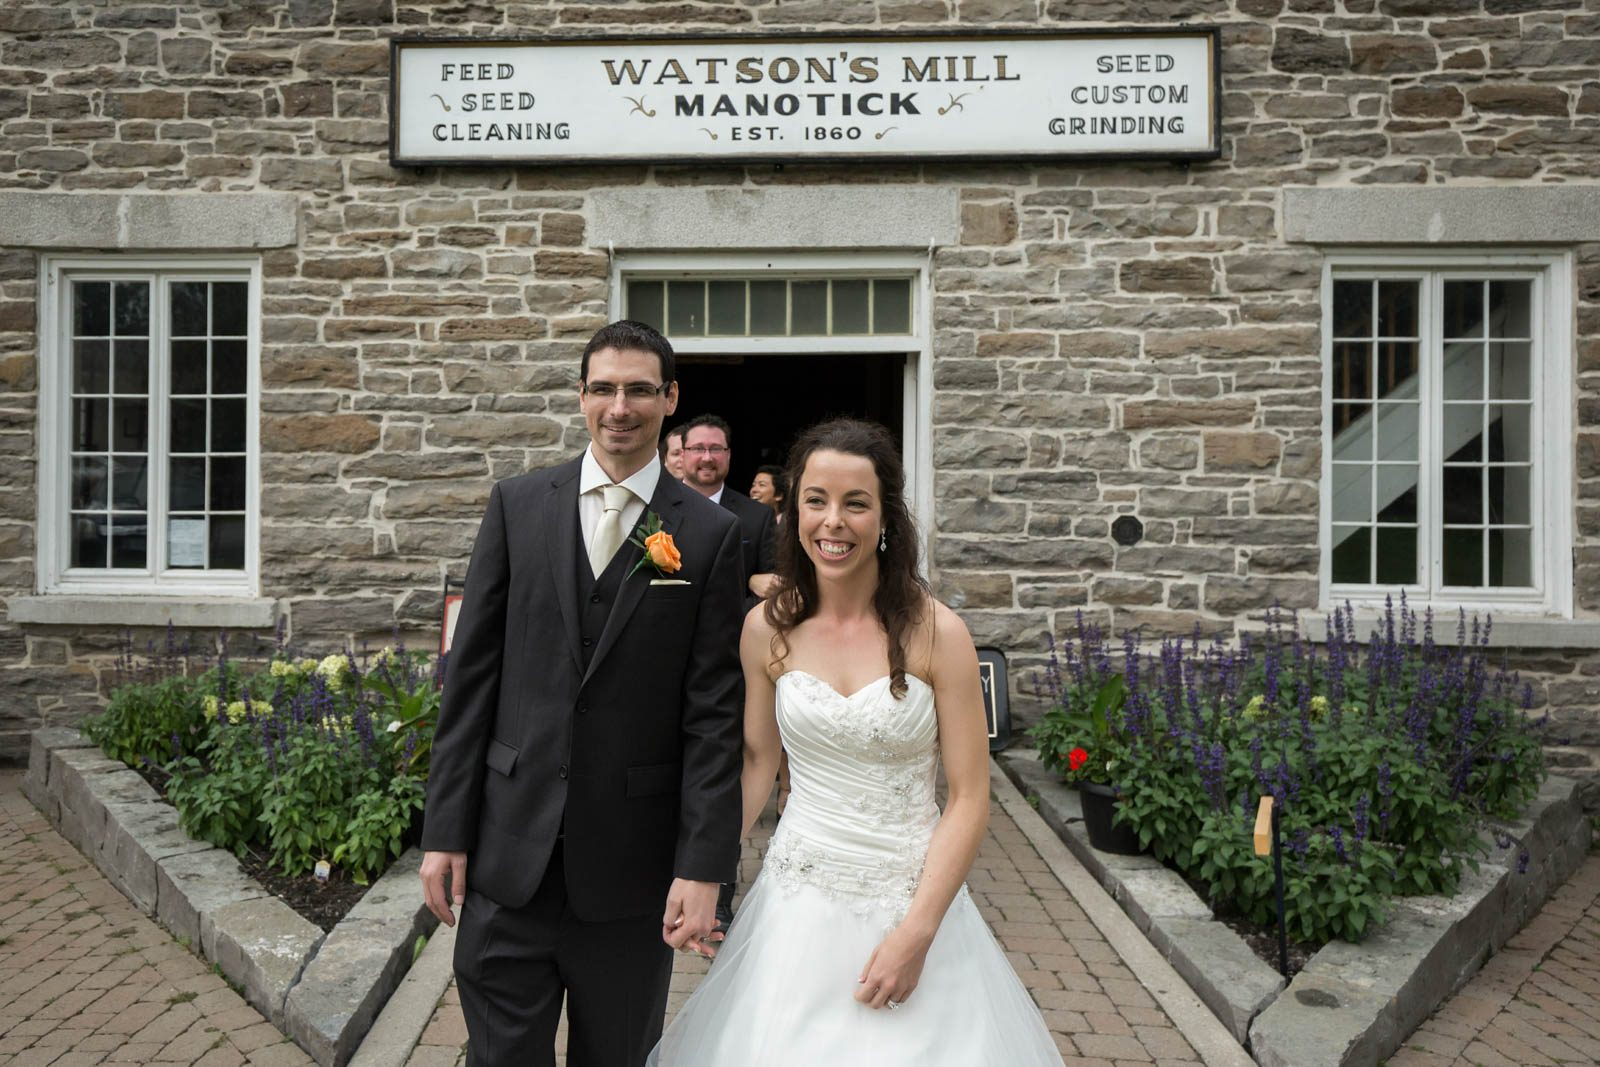 Watsons Mill wedding ceremony entrance